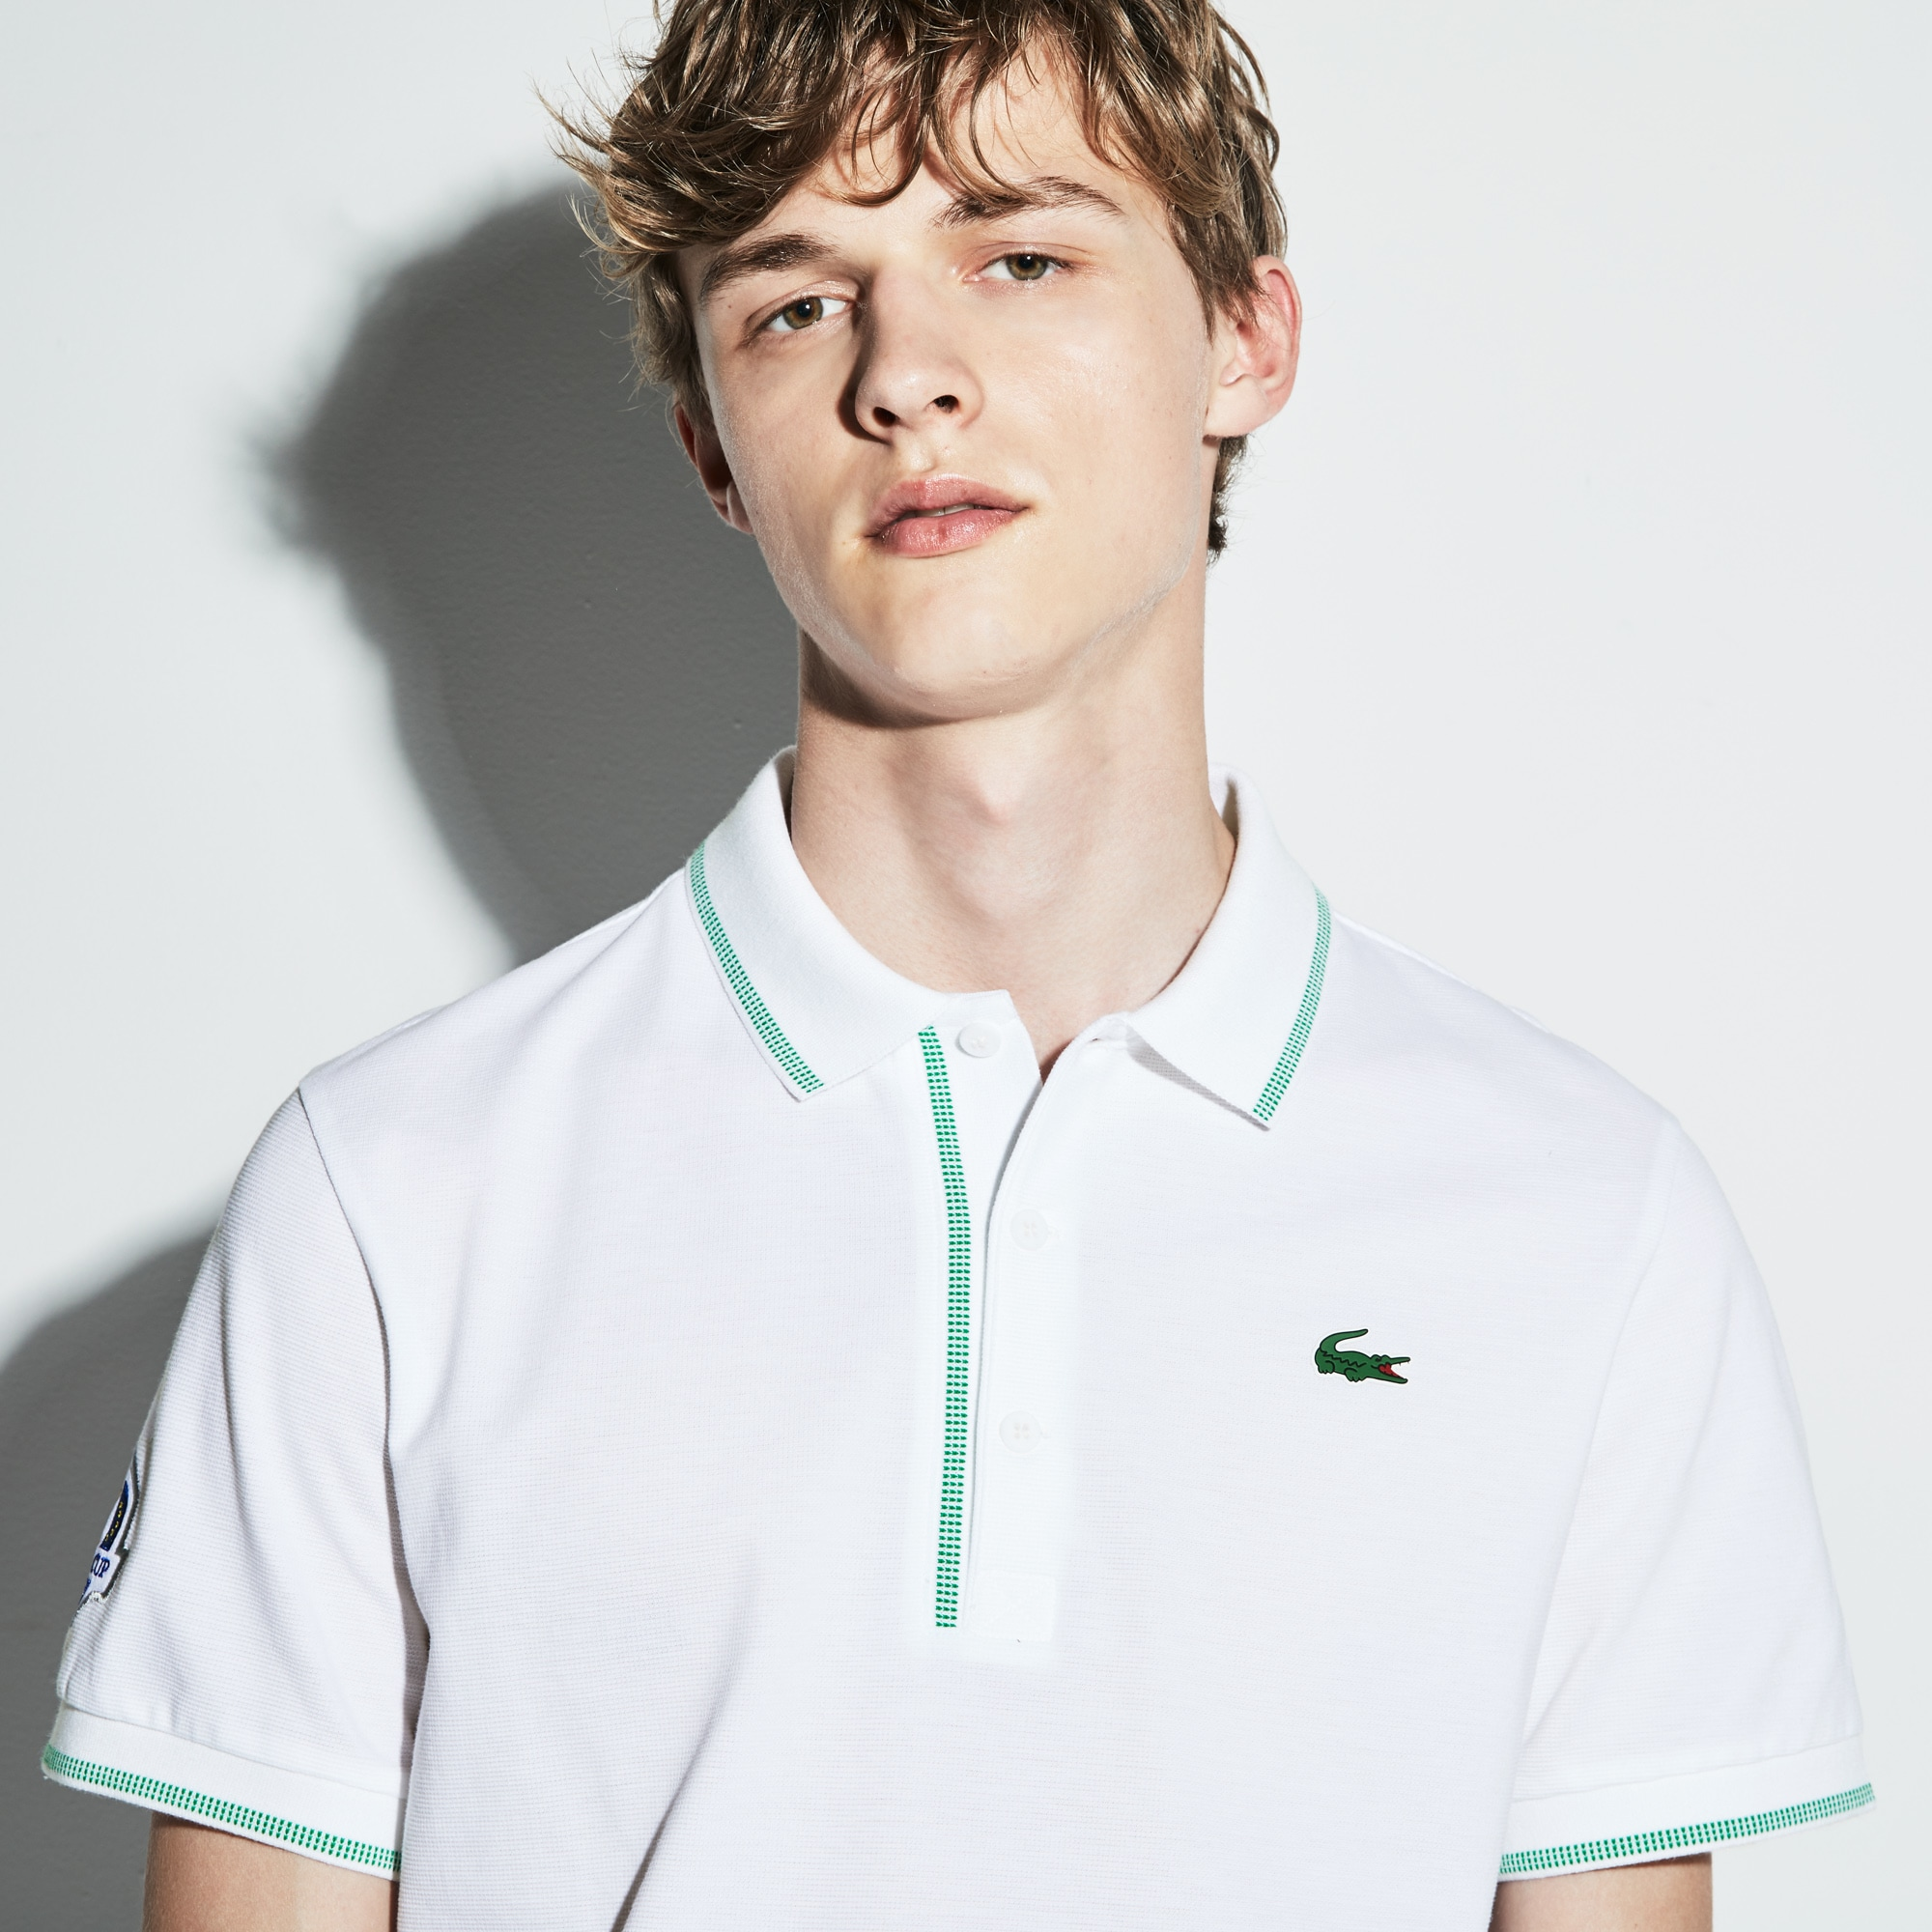 Men's Lacoste SPORT Ryder Cup Edition Piped Cotton Golf Polo Shirt